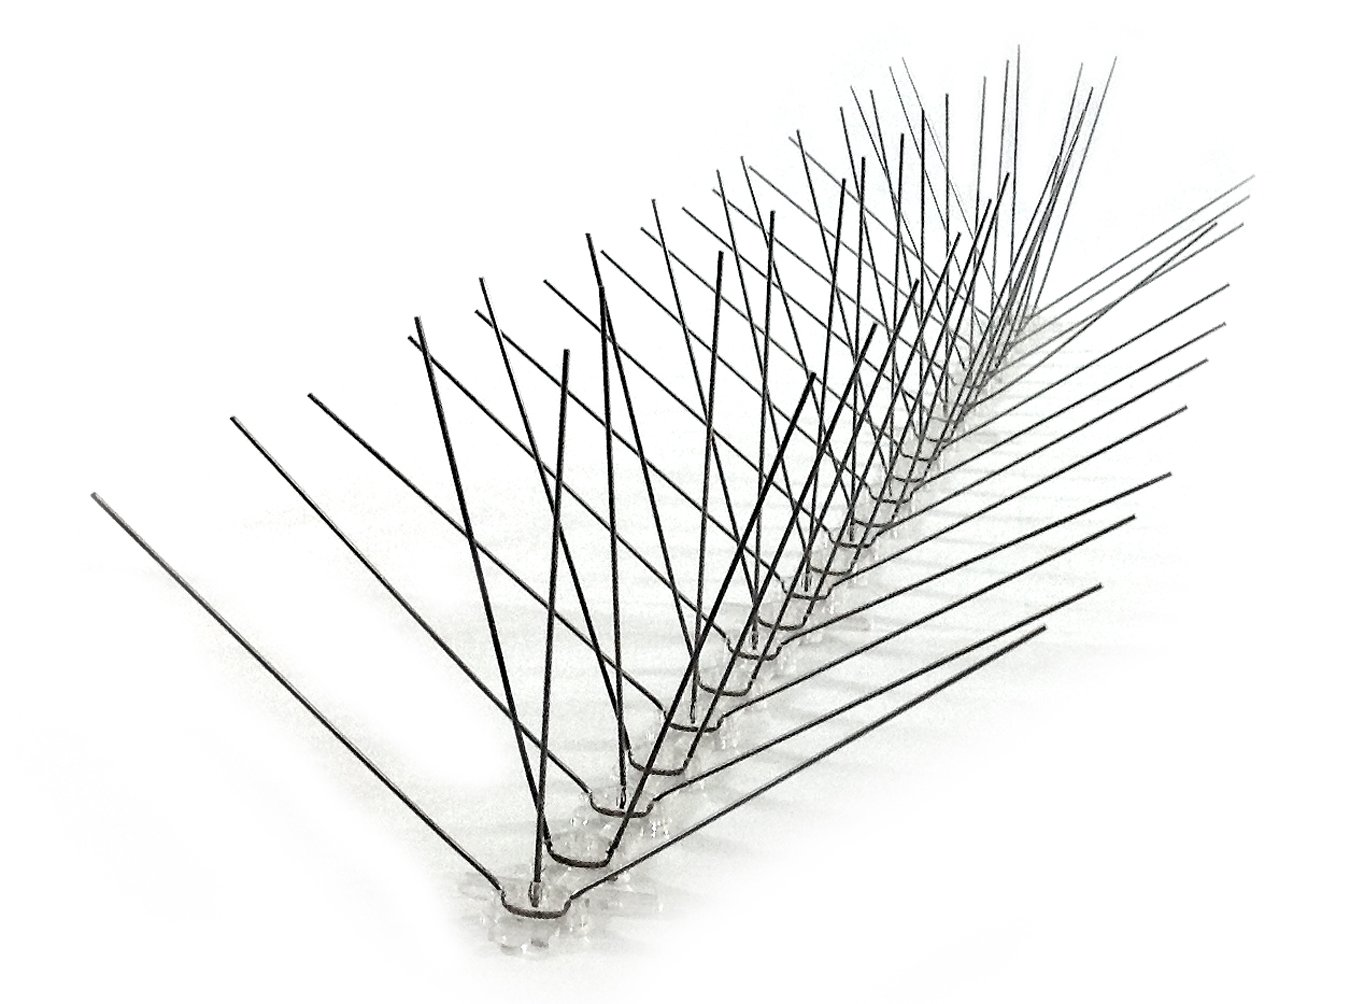 Amazon.com: Bird-X Extra Wide Stainless Steel Bird Spikes, Covers 10 ...